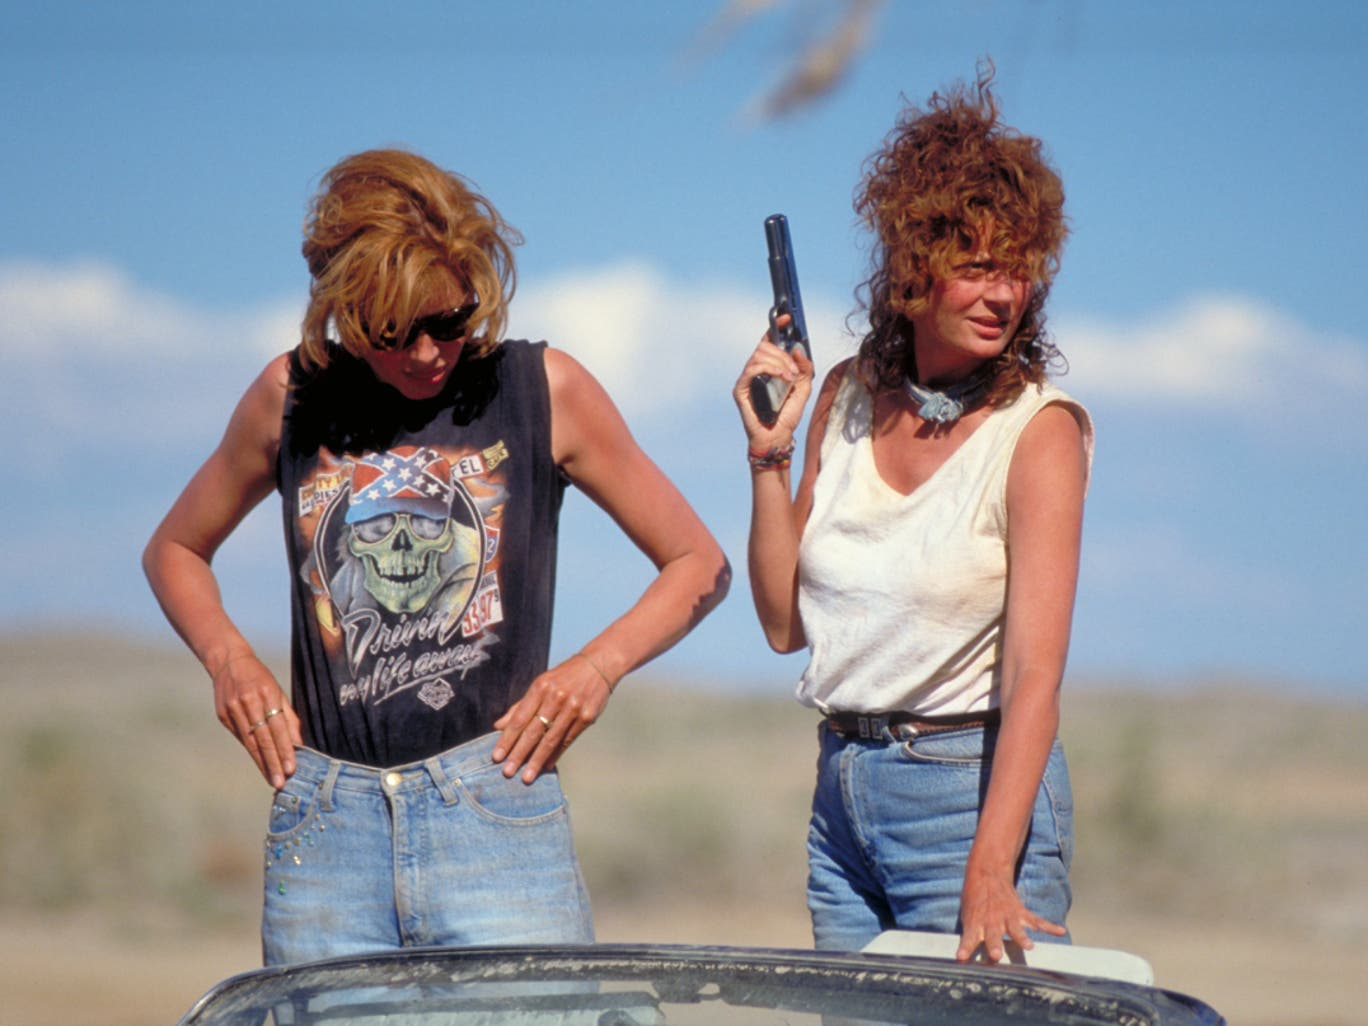 Thelma and louise 2 mgm.jpg